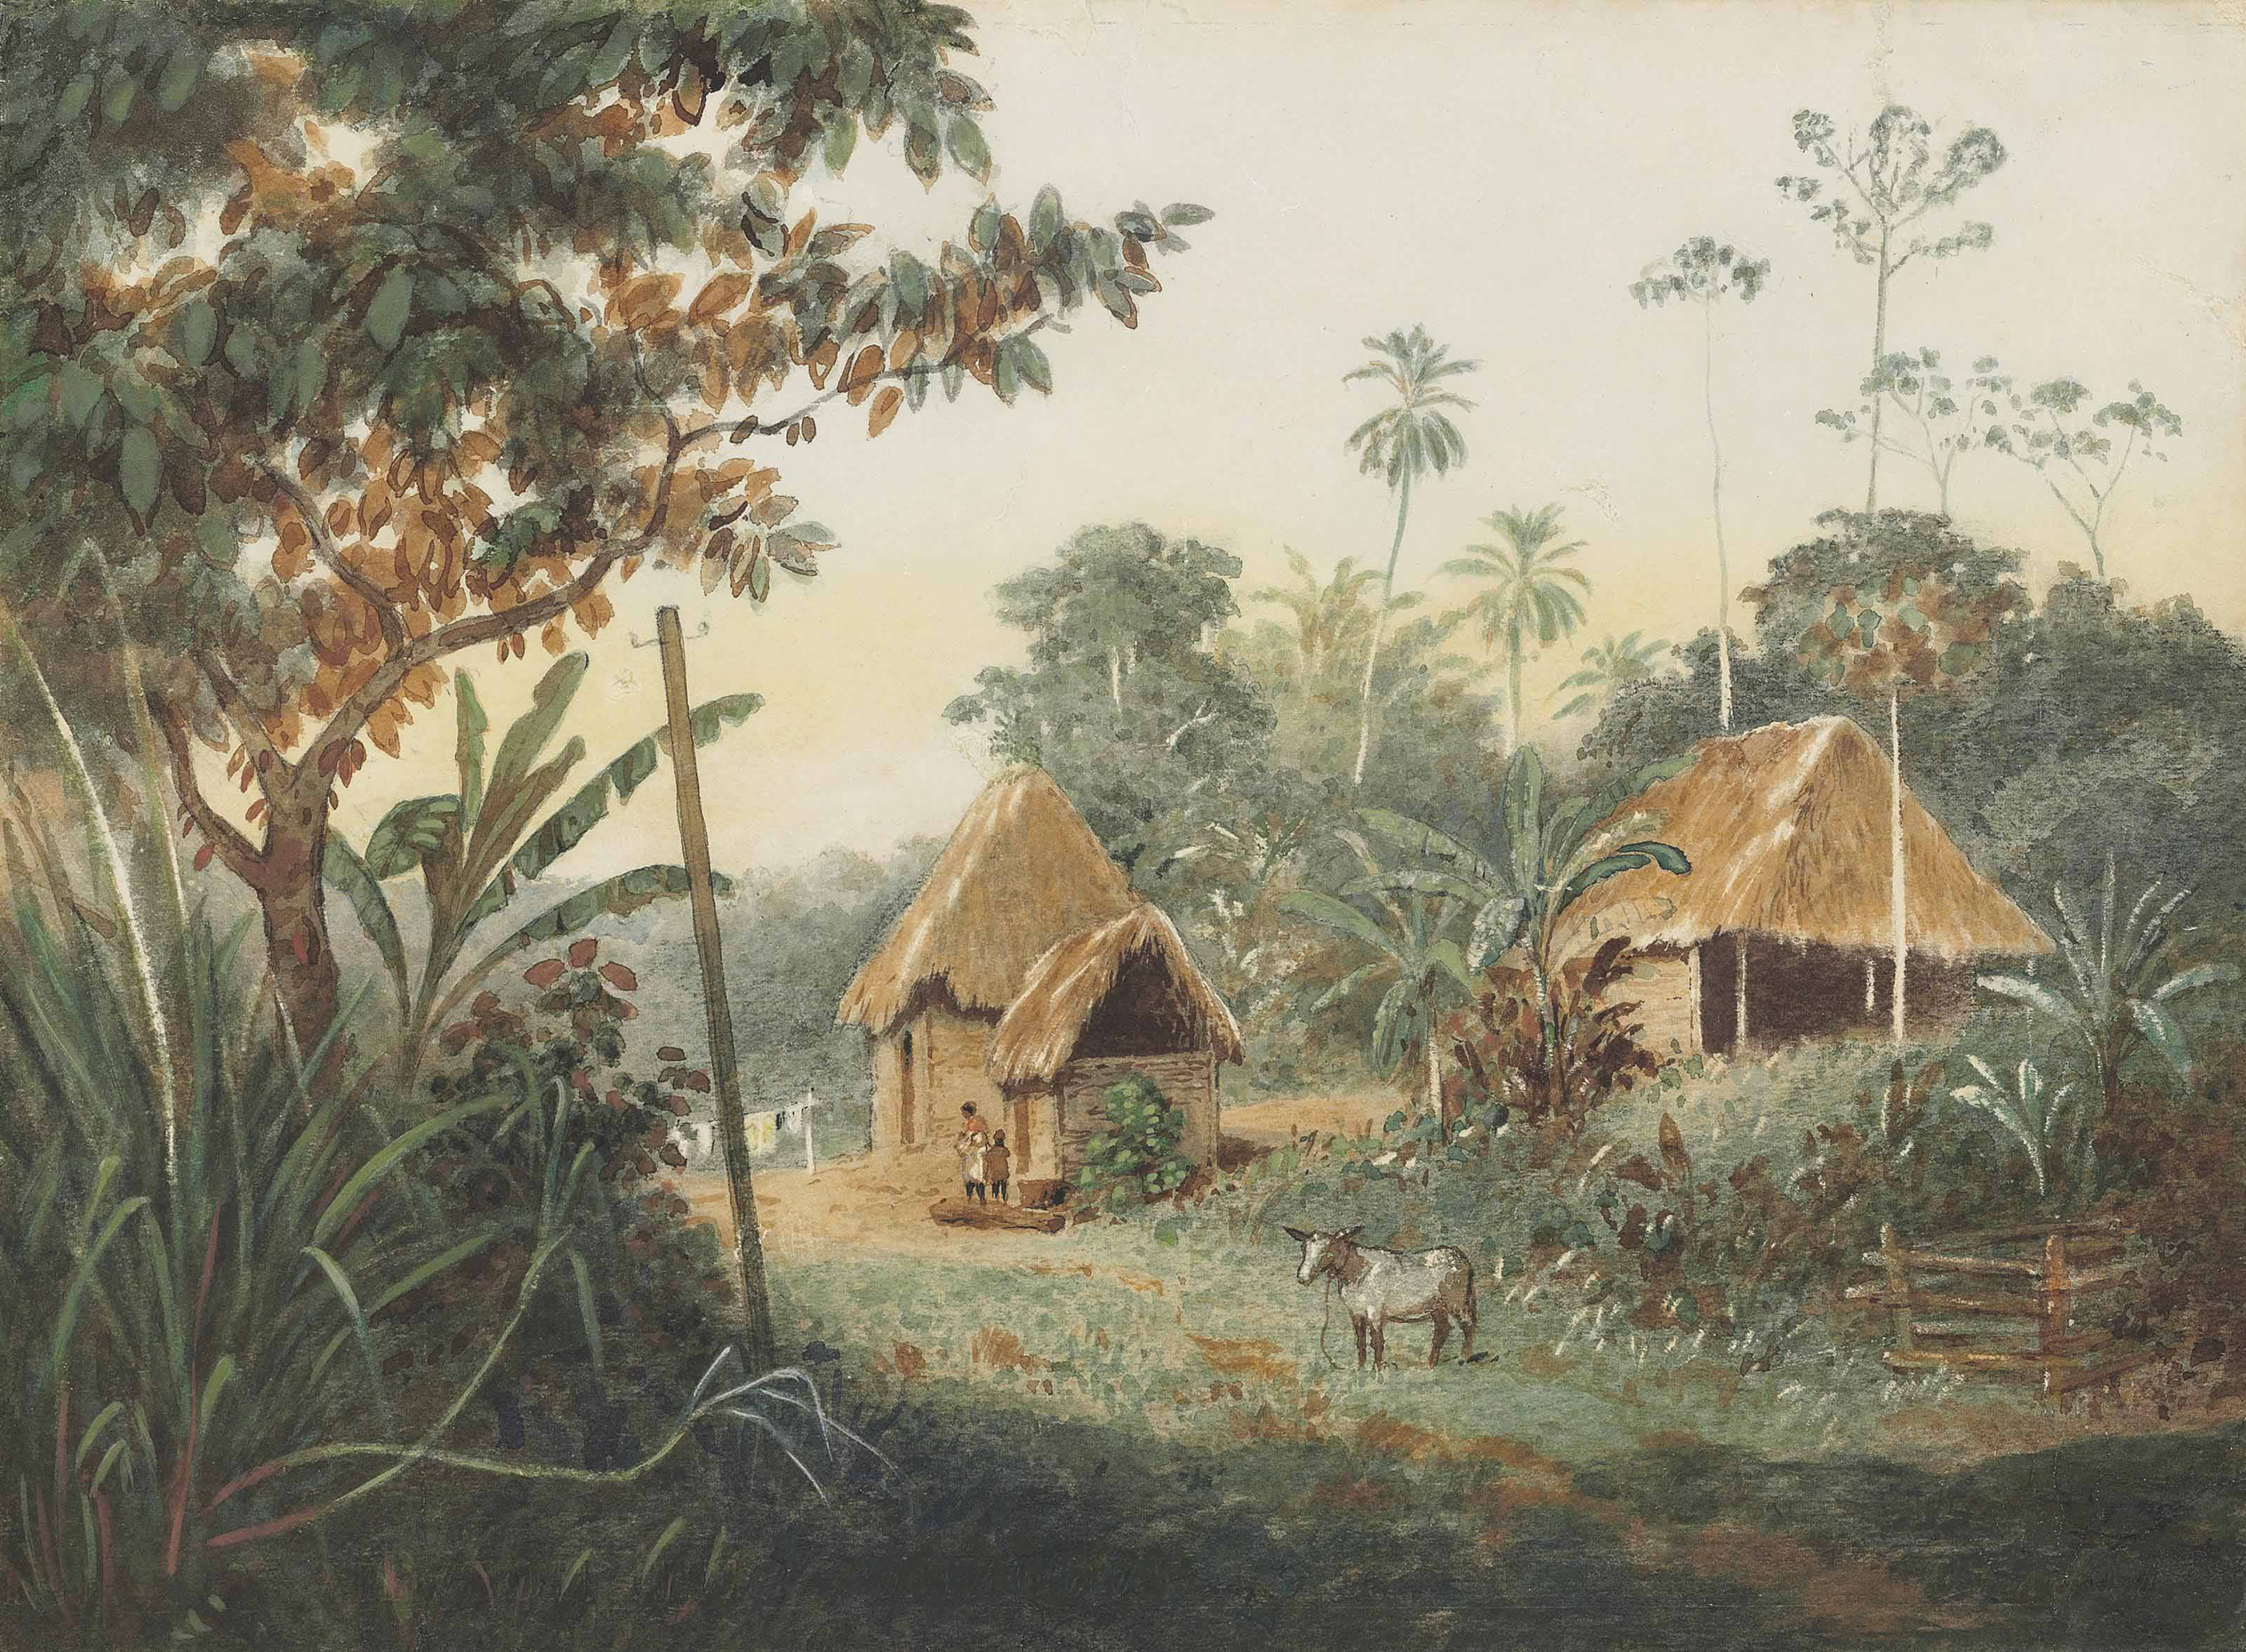 Thatched huts on a cocoa estate, Trinidad